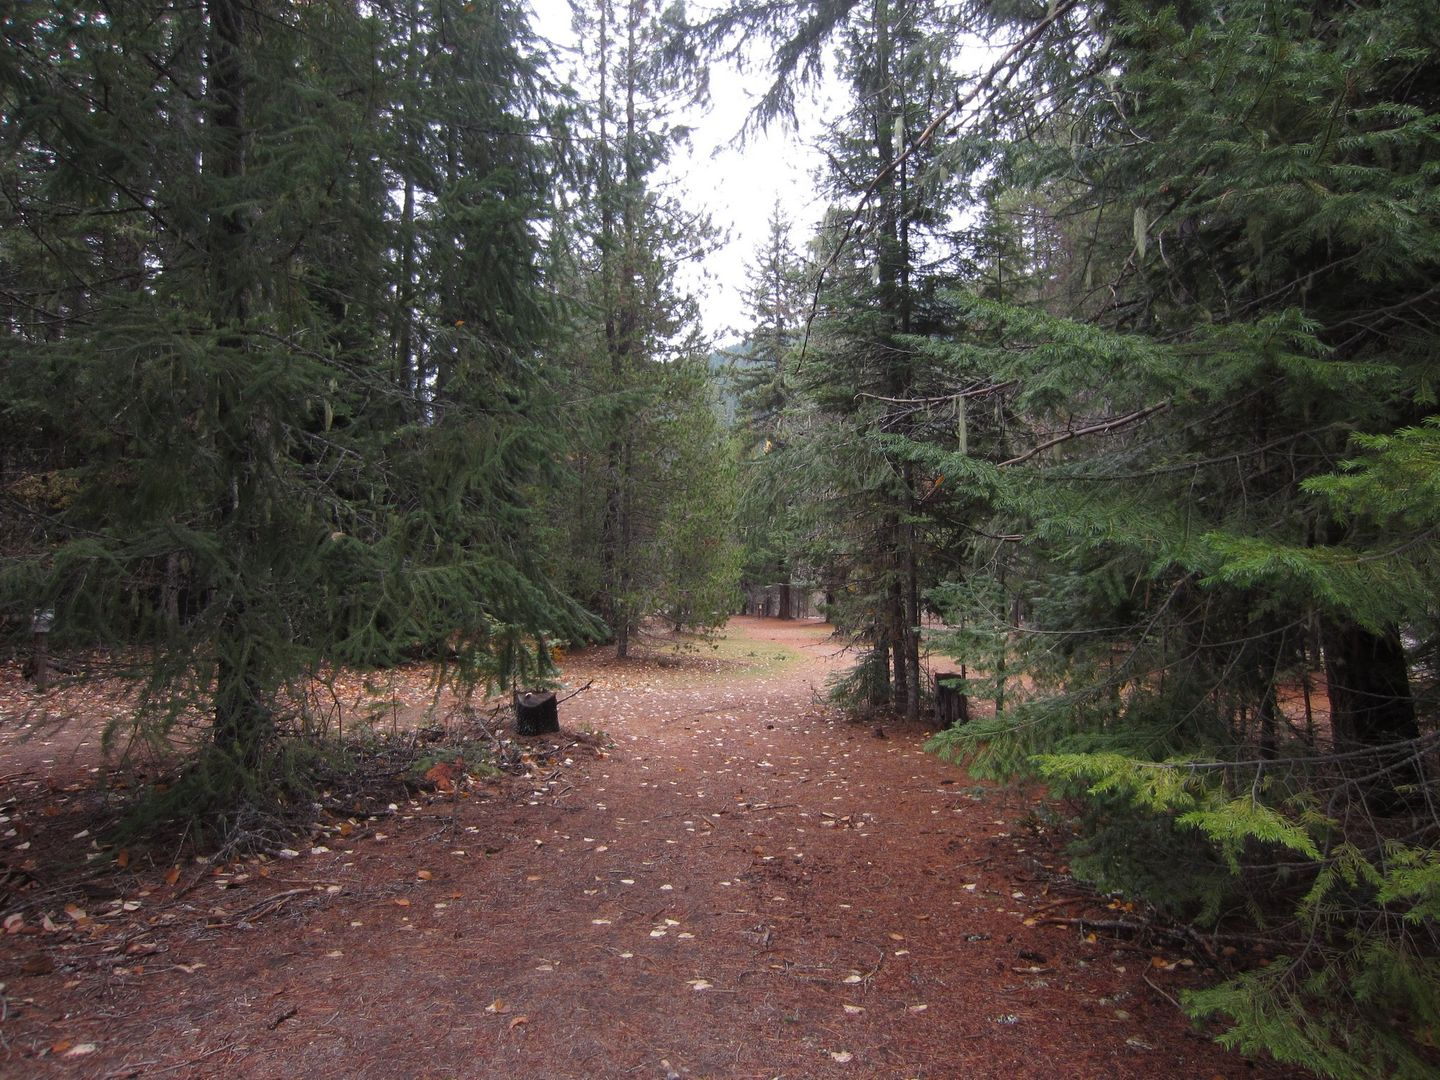 Barlow Trail - Waypoint 27: Campsites on Either Side of Road -- Continue Straight